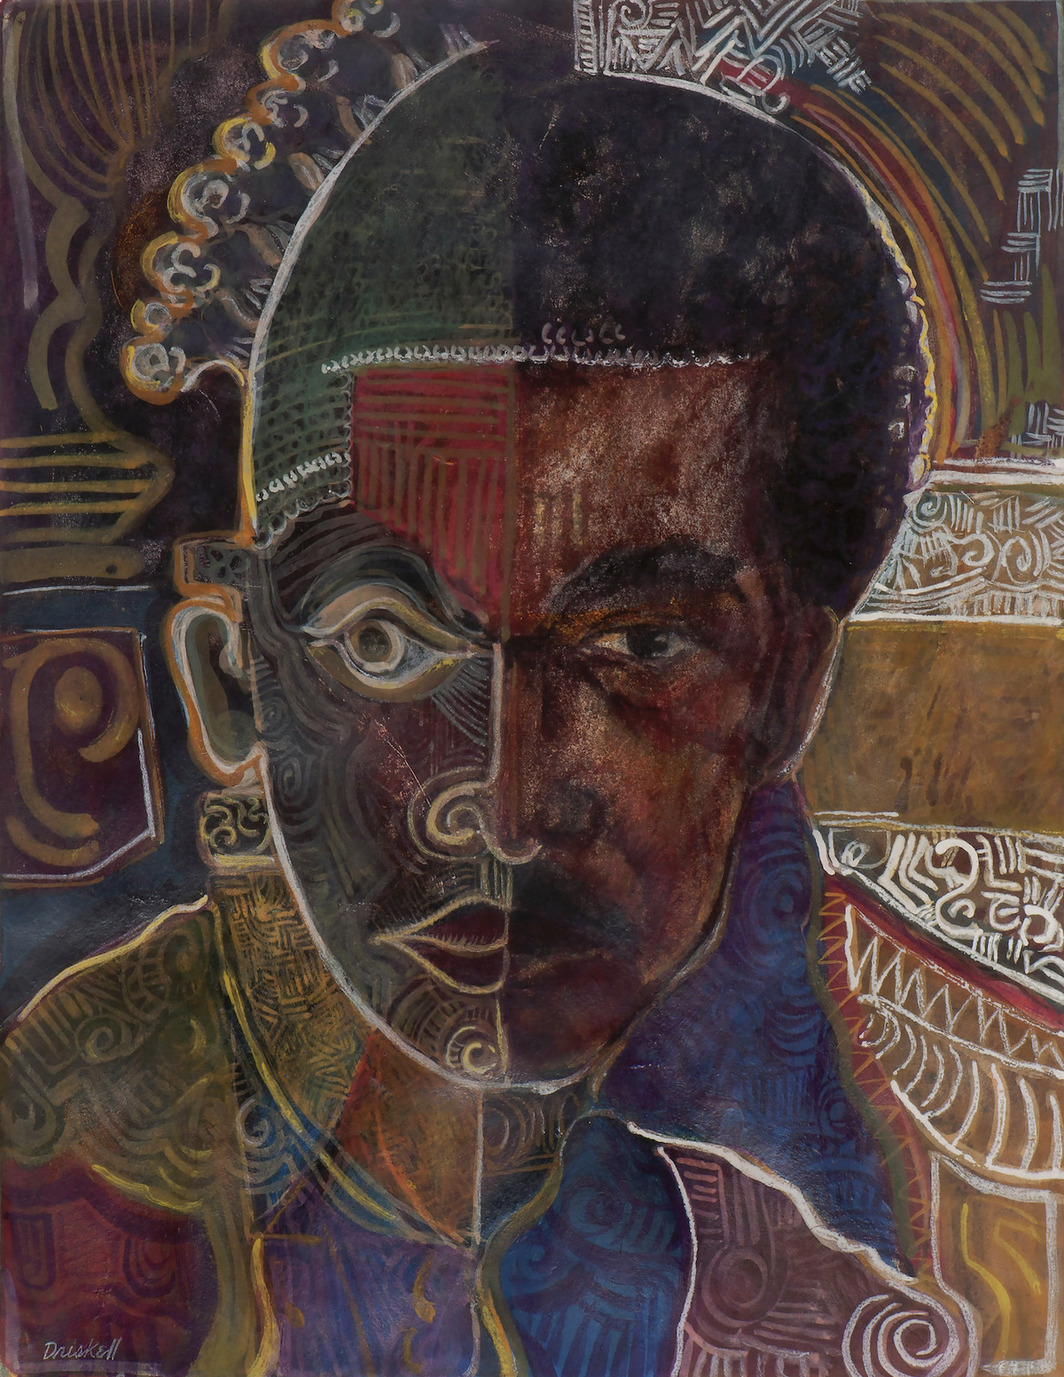 "David Driskell, Self Portrait as Beni (""I Dream Again of Benin""), 1974, egg tempera, gouache, and collage on paper, 17 x 13"". Courtesy: High Museum of Art, Atlanta/DC Moore, New York."